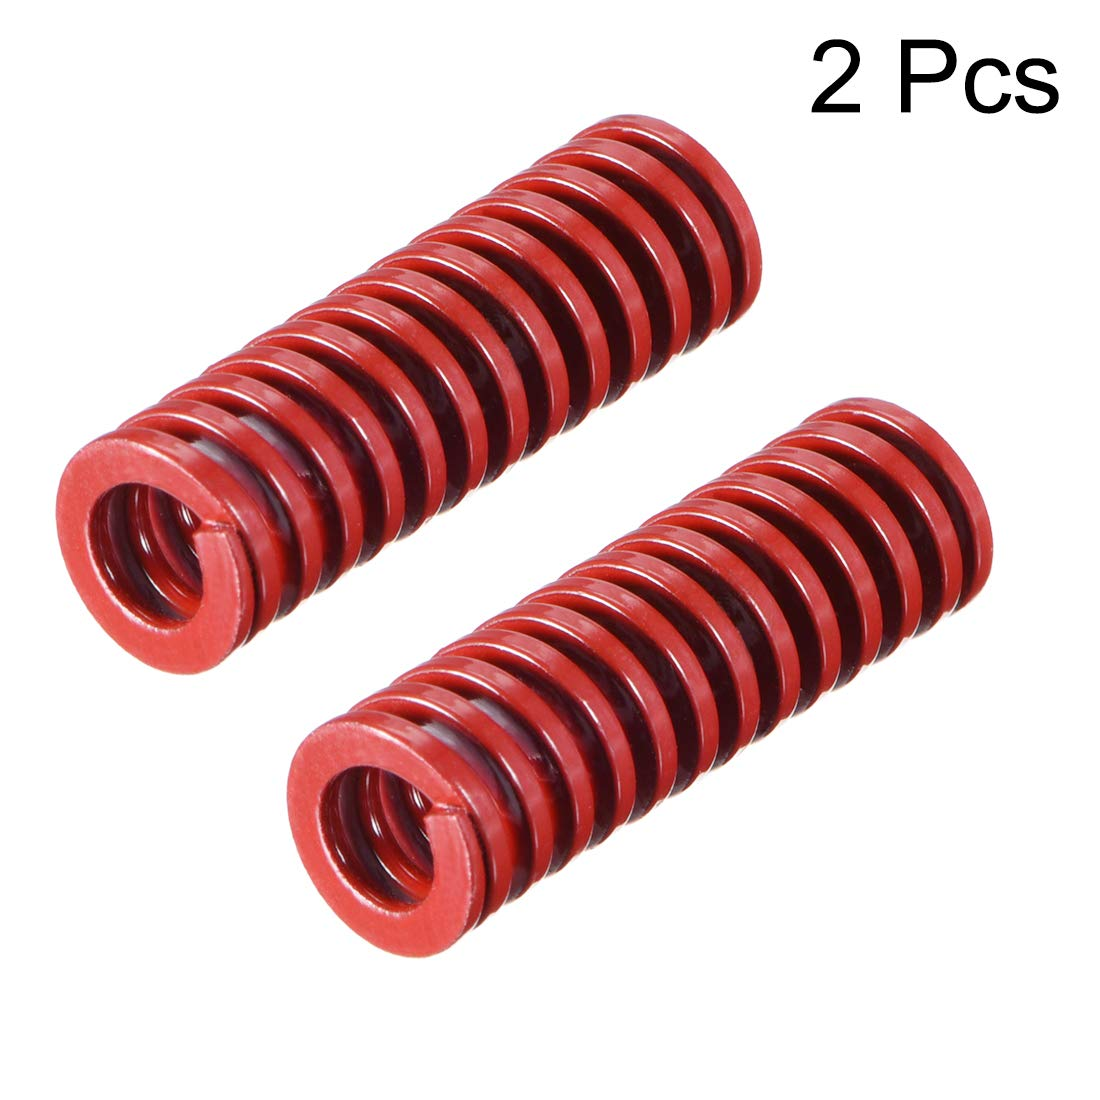 uxcell 8mm OD 20mm Long Medium Load Compression Mould Die Spring Red 10pcs